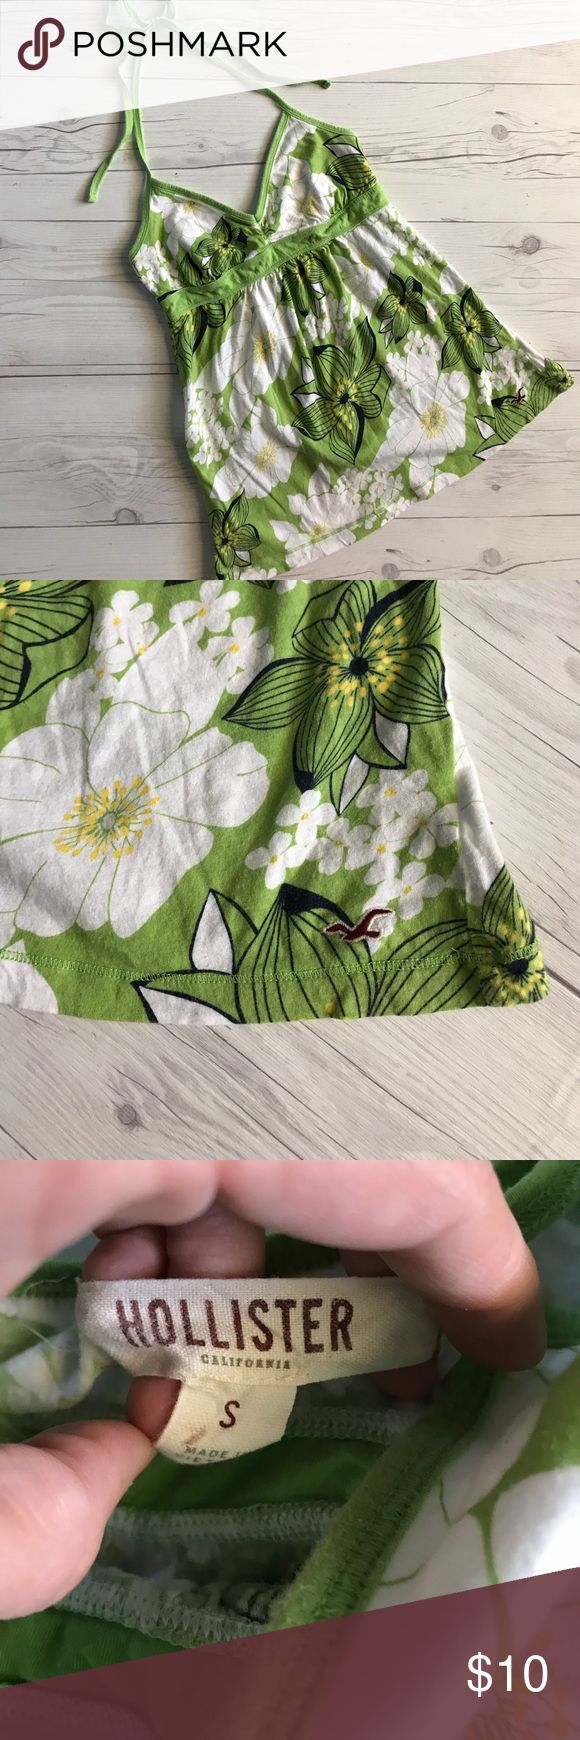 Hollister top Green and white floral cotton halter top by Hollister. Size small. Excellent condition no rips or stains. ALL ITEMS ARE BUY 2 GET 1 FREE! Hollister Tops